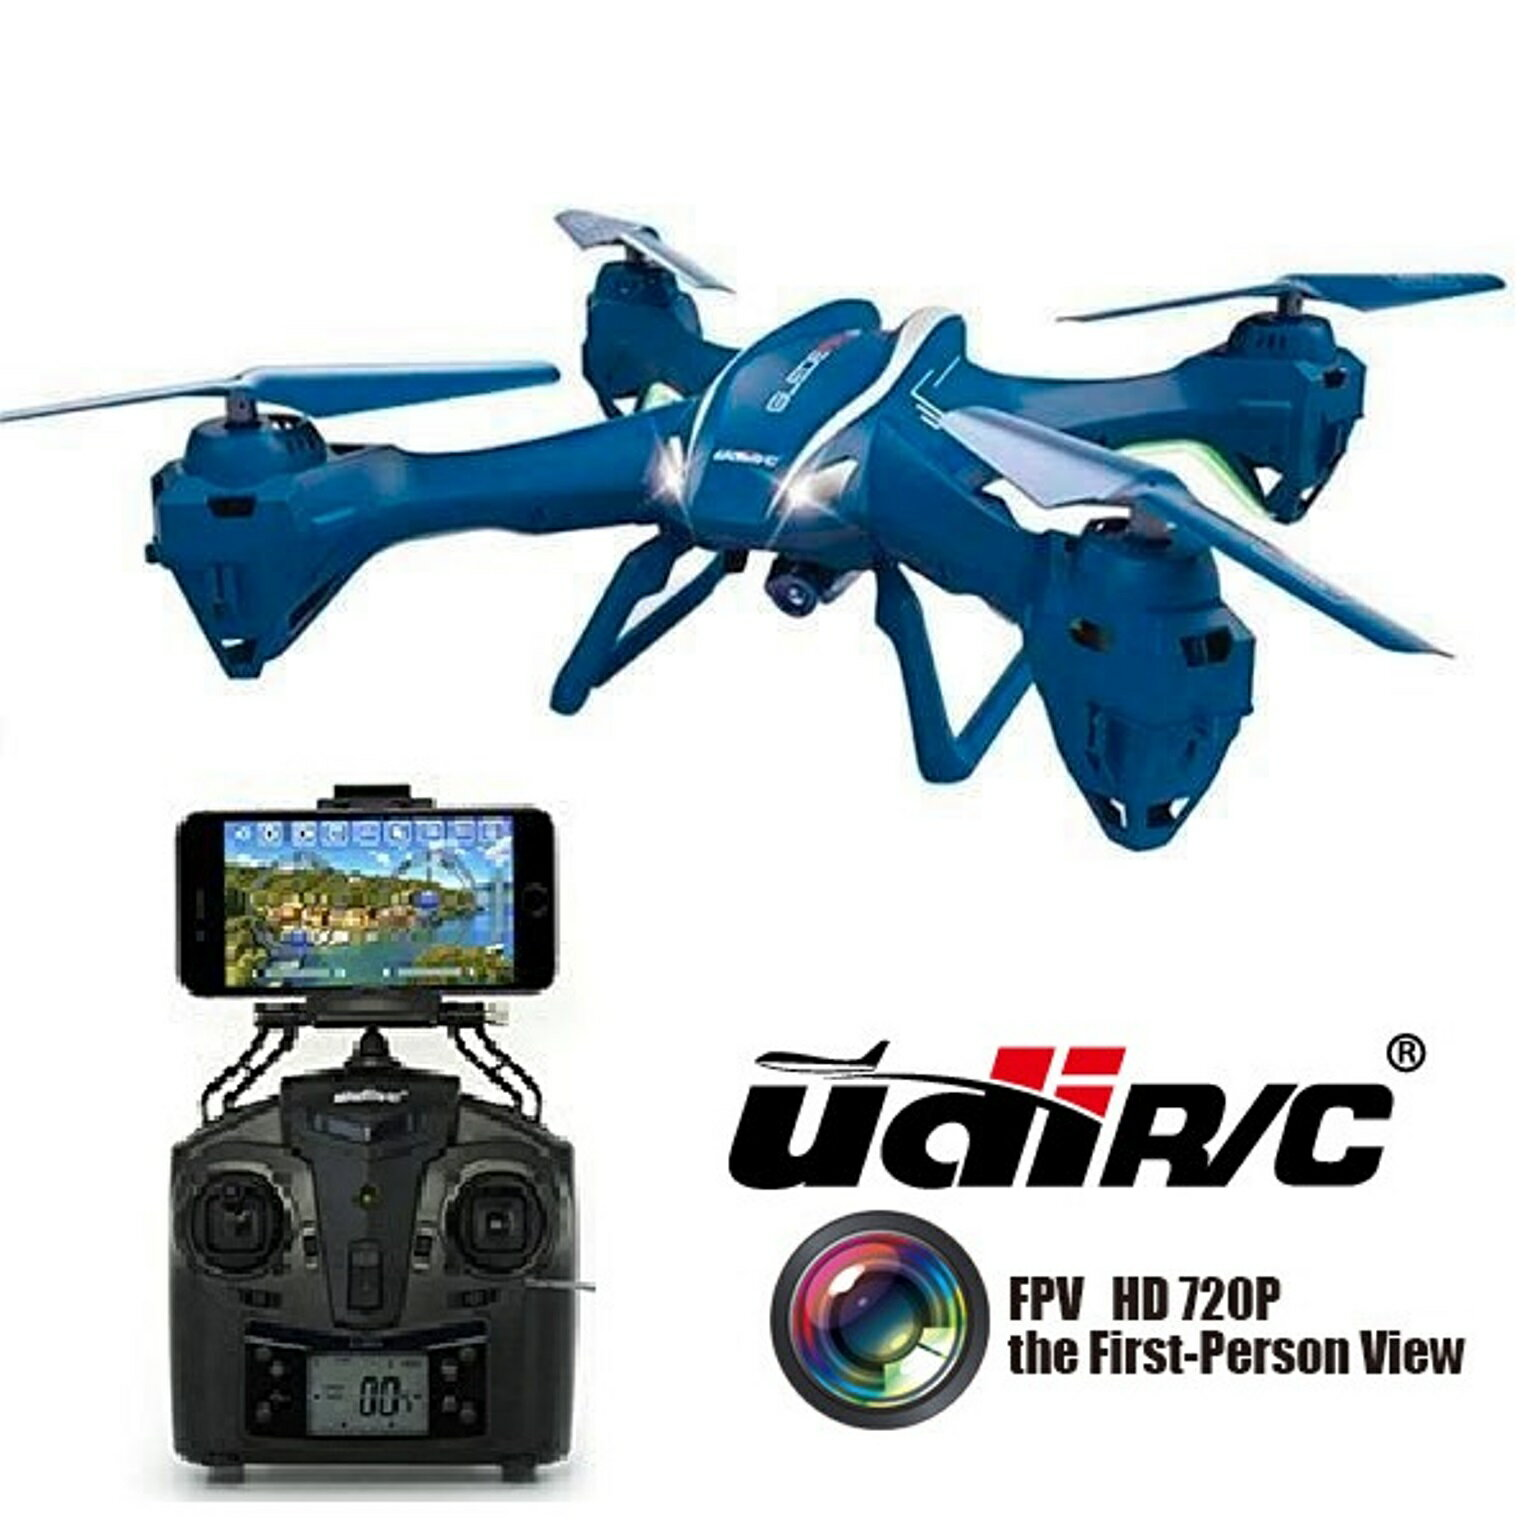 UDI U842 WiFi FPV Quadcopter Drone with HD Camera - First Person View and VR Live Streaming - Blue 0